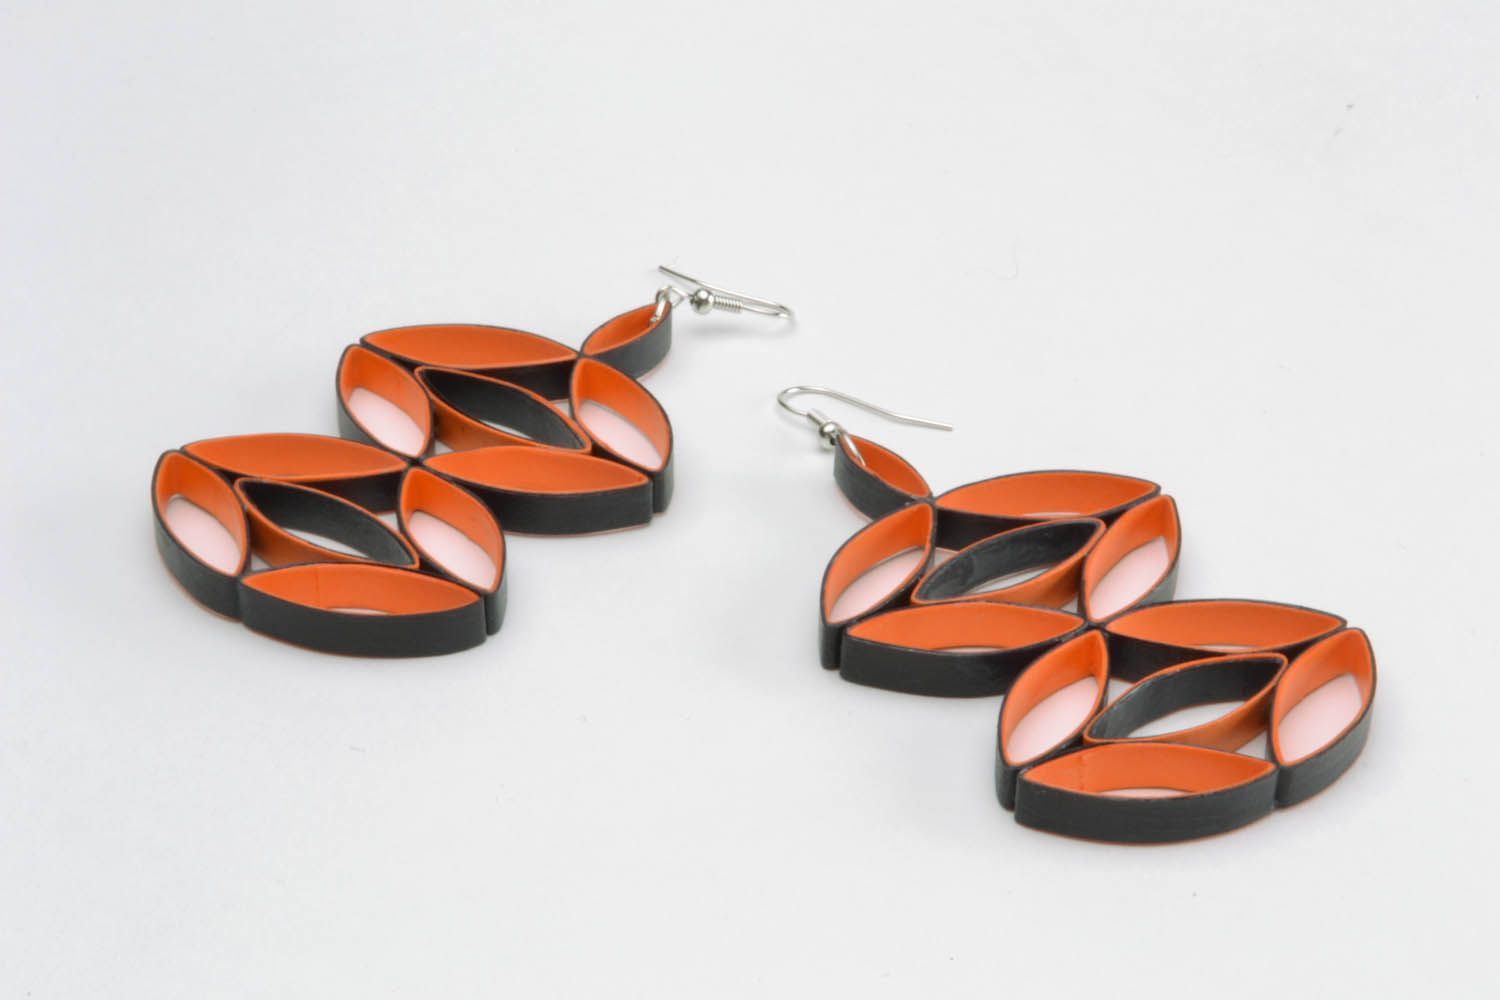 Large earrings made of quilling paper photo 4